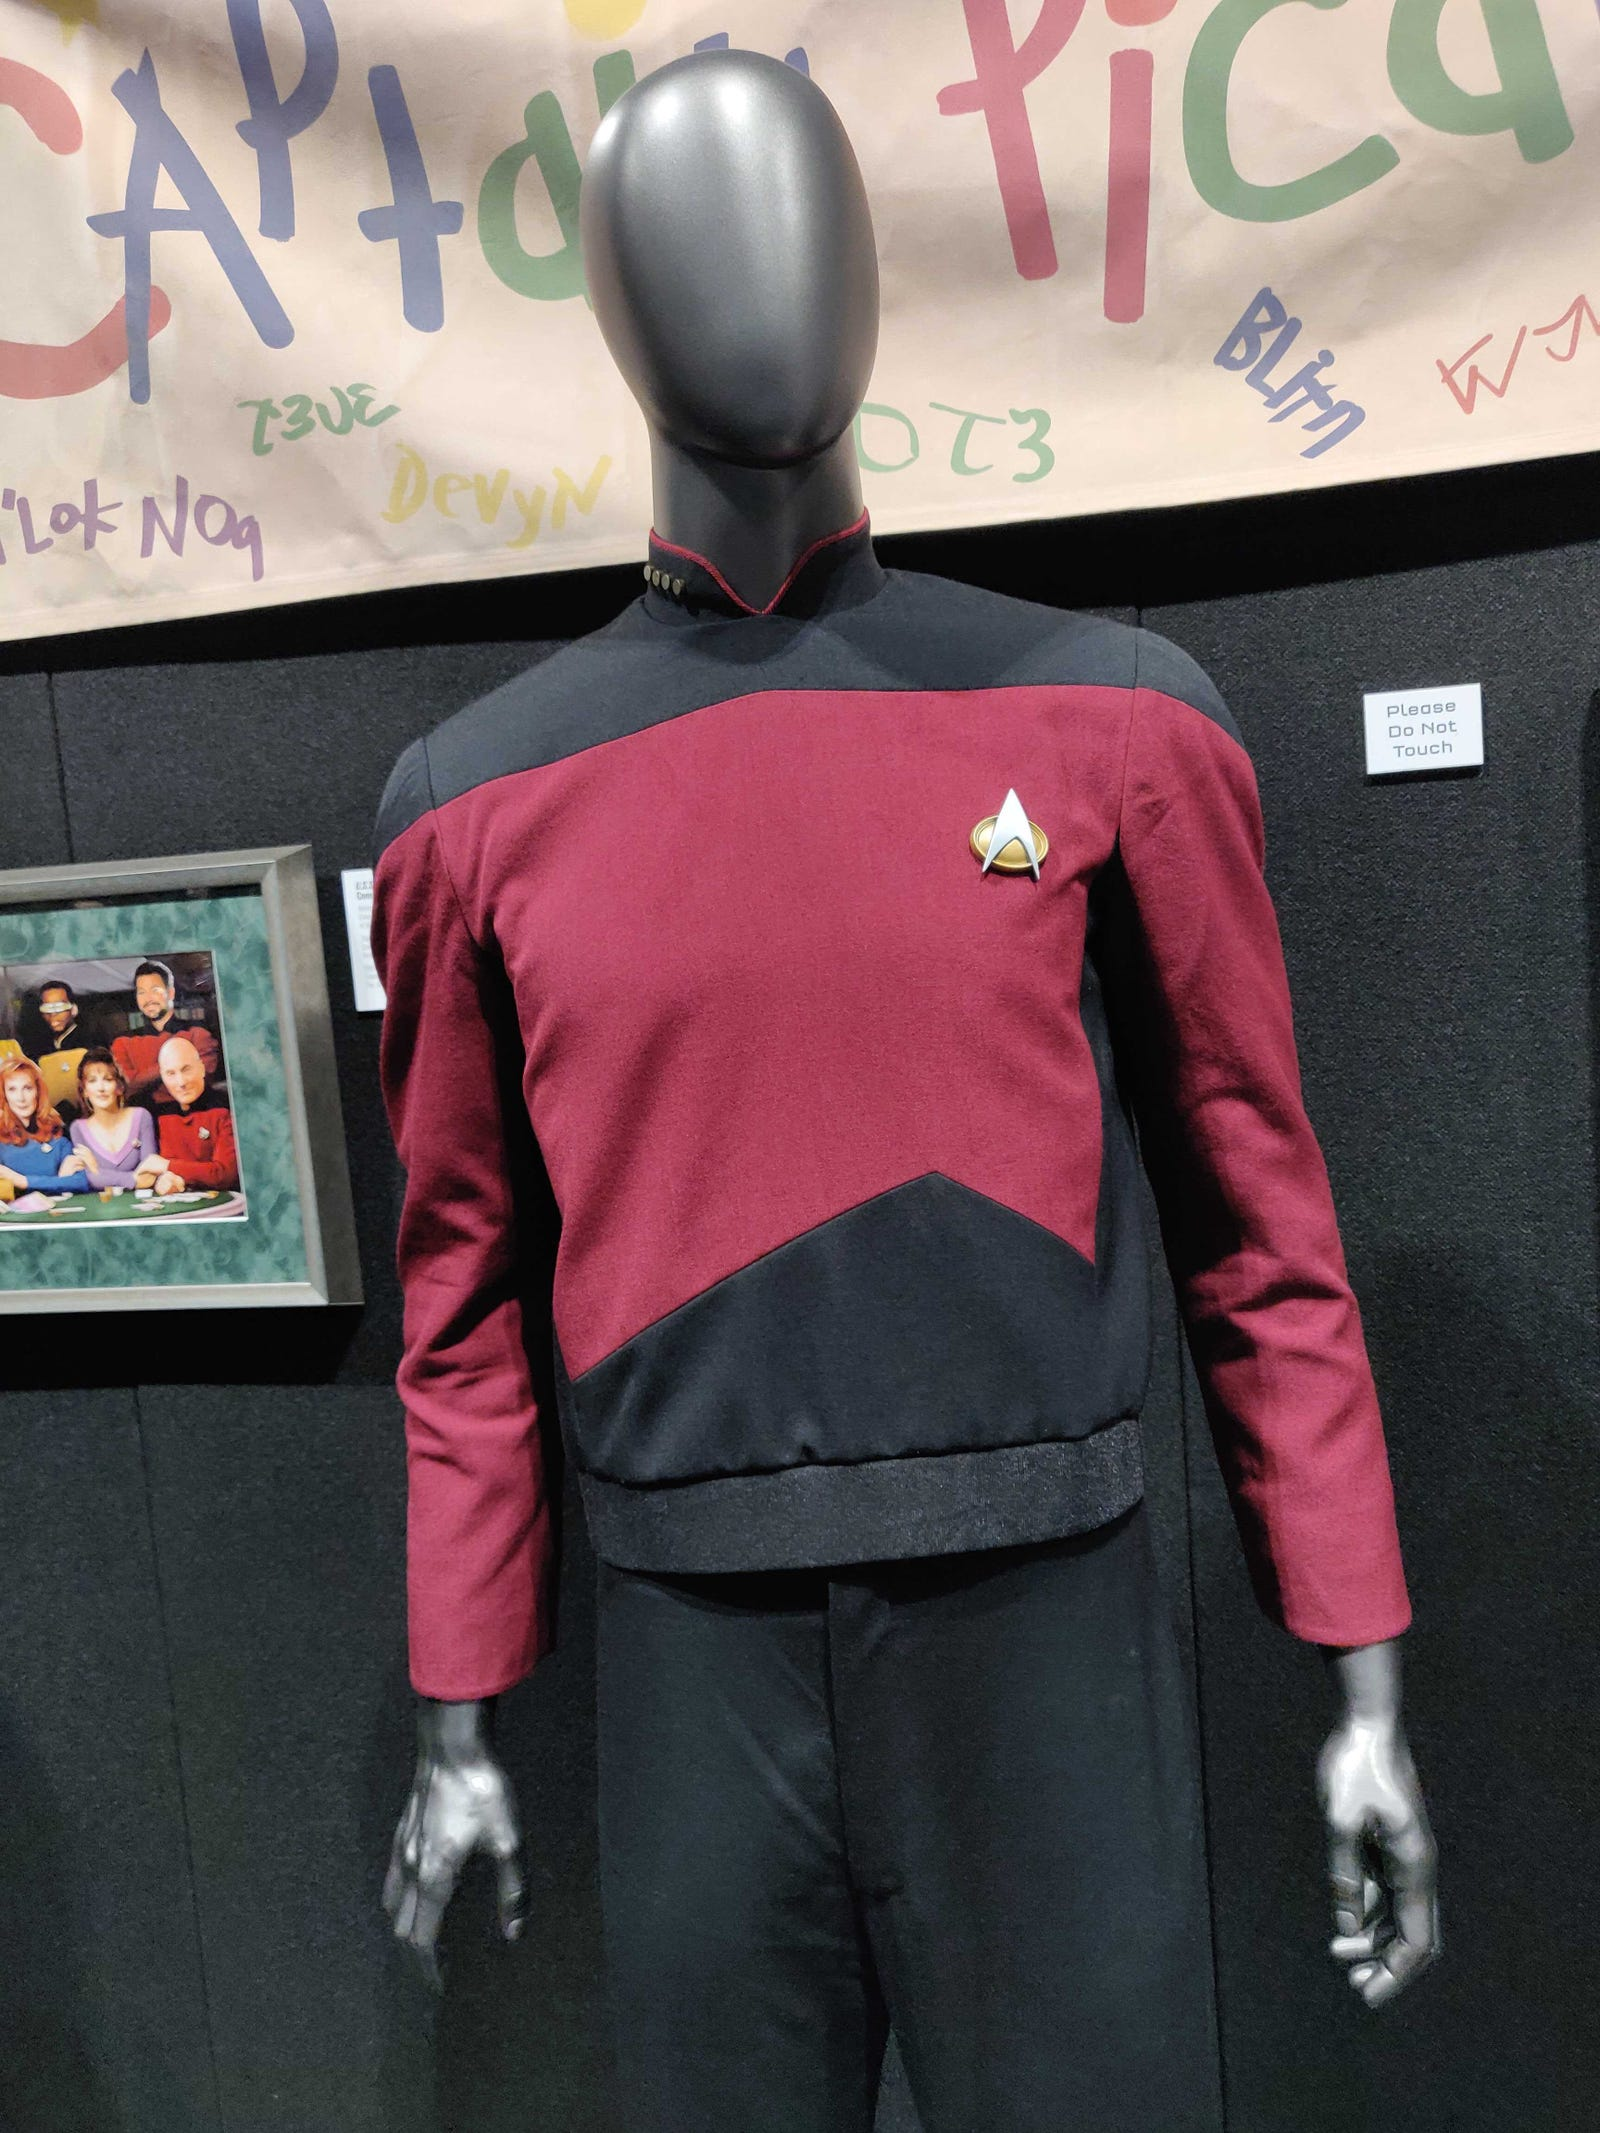 More props from the full display at Destination Star Trek.